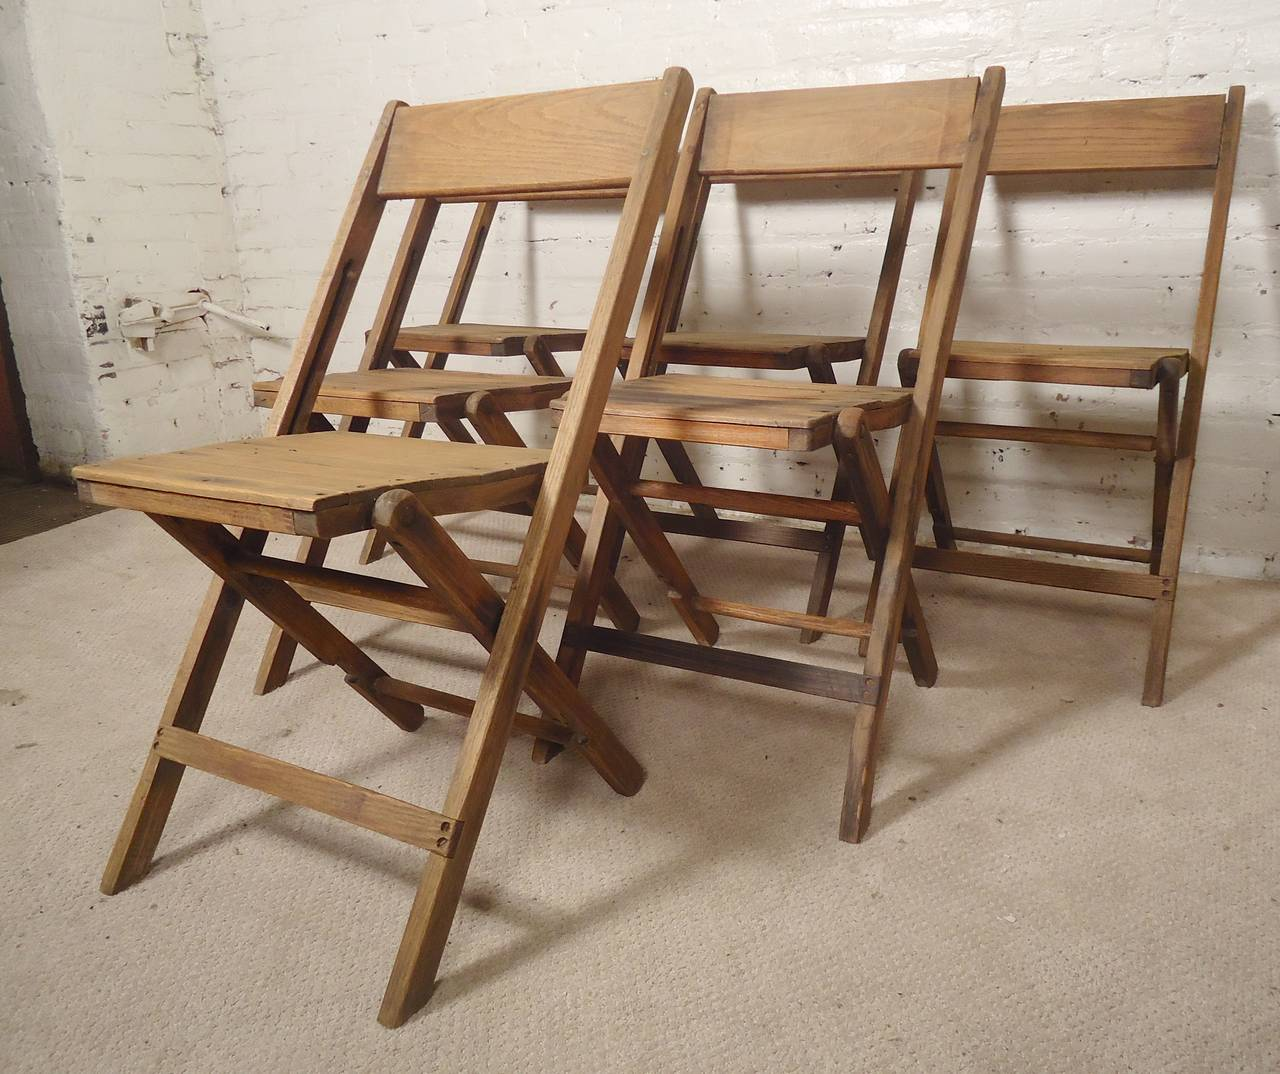 wooden folding chairs for sale tutu chair skirt classic all wood at 1stdibs